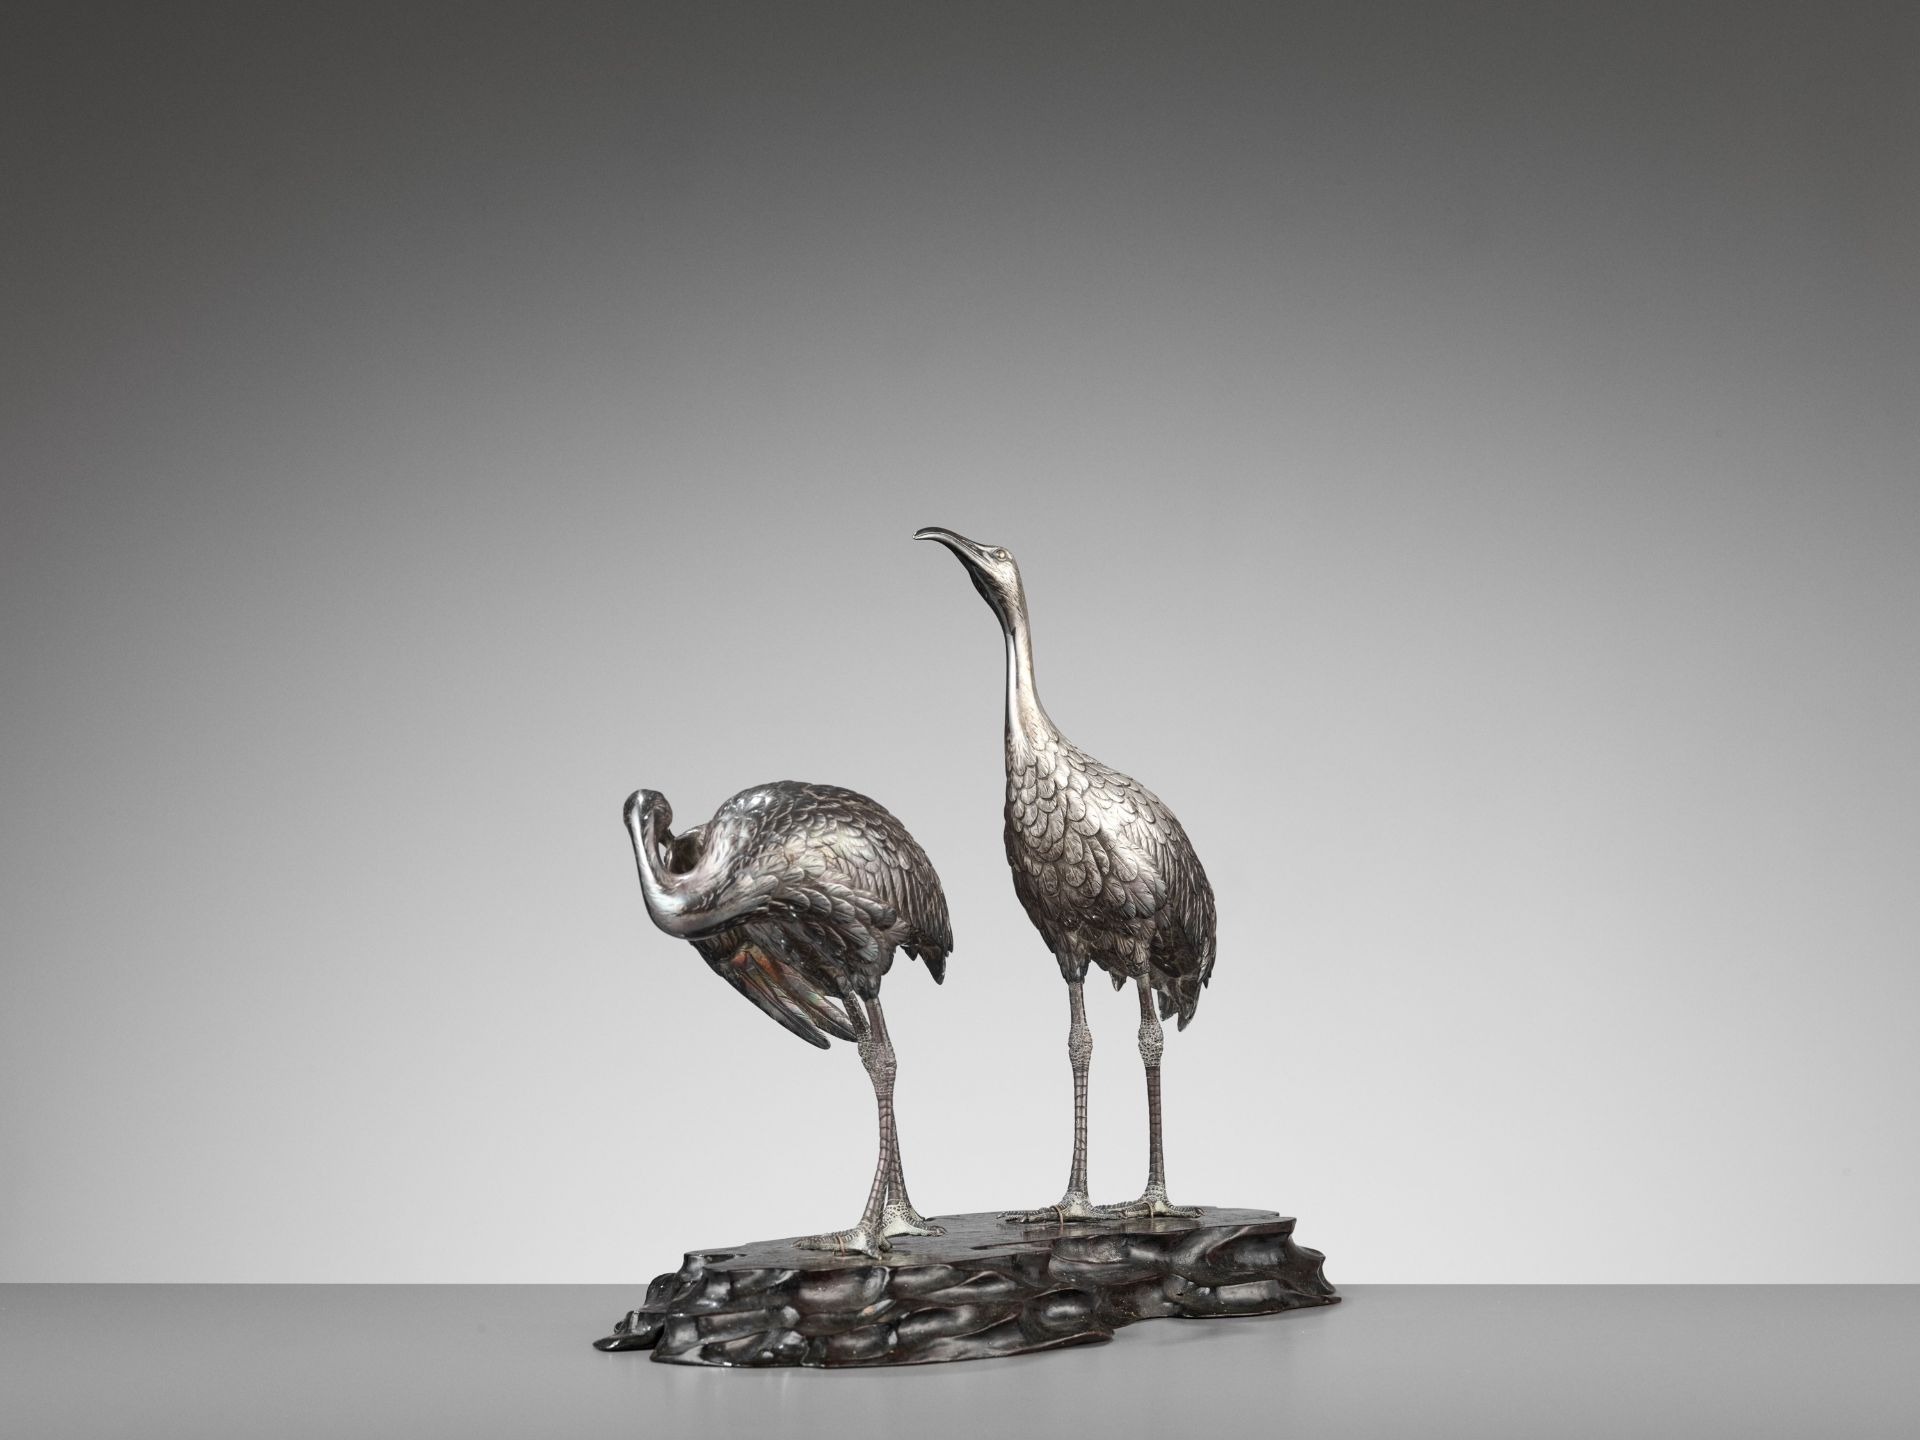 MUSASHIYA: A FINE AND RARE SILVERED OKIMONO OF A PAIR OF CRANES - Image 6 of 11